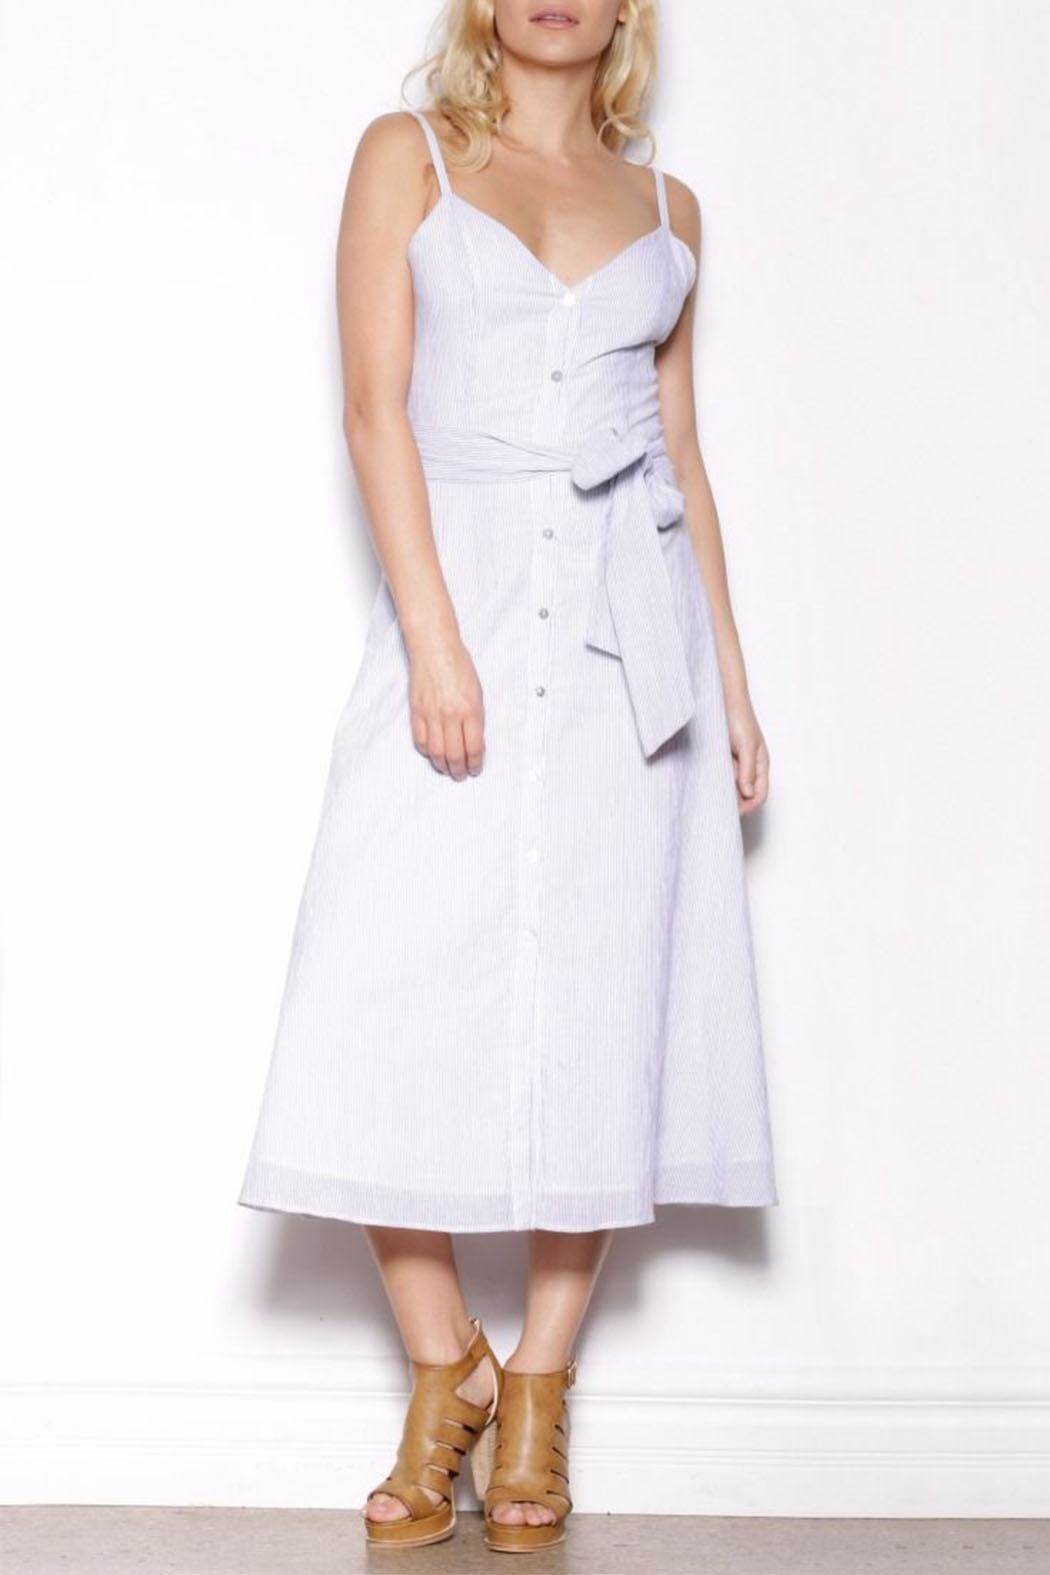 Pink Martini Collection Blessing Ties Dress - Main Image